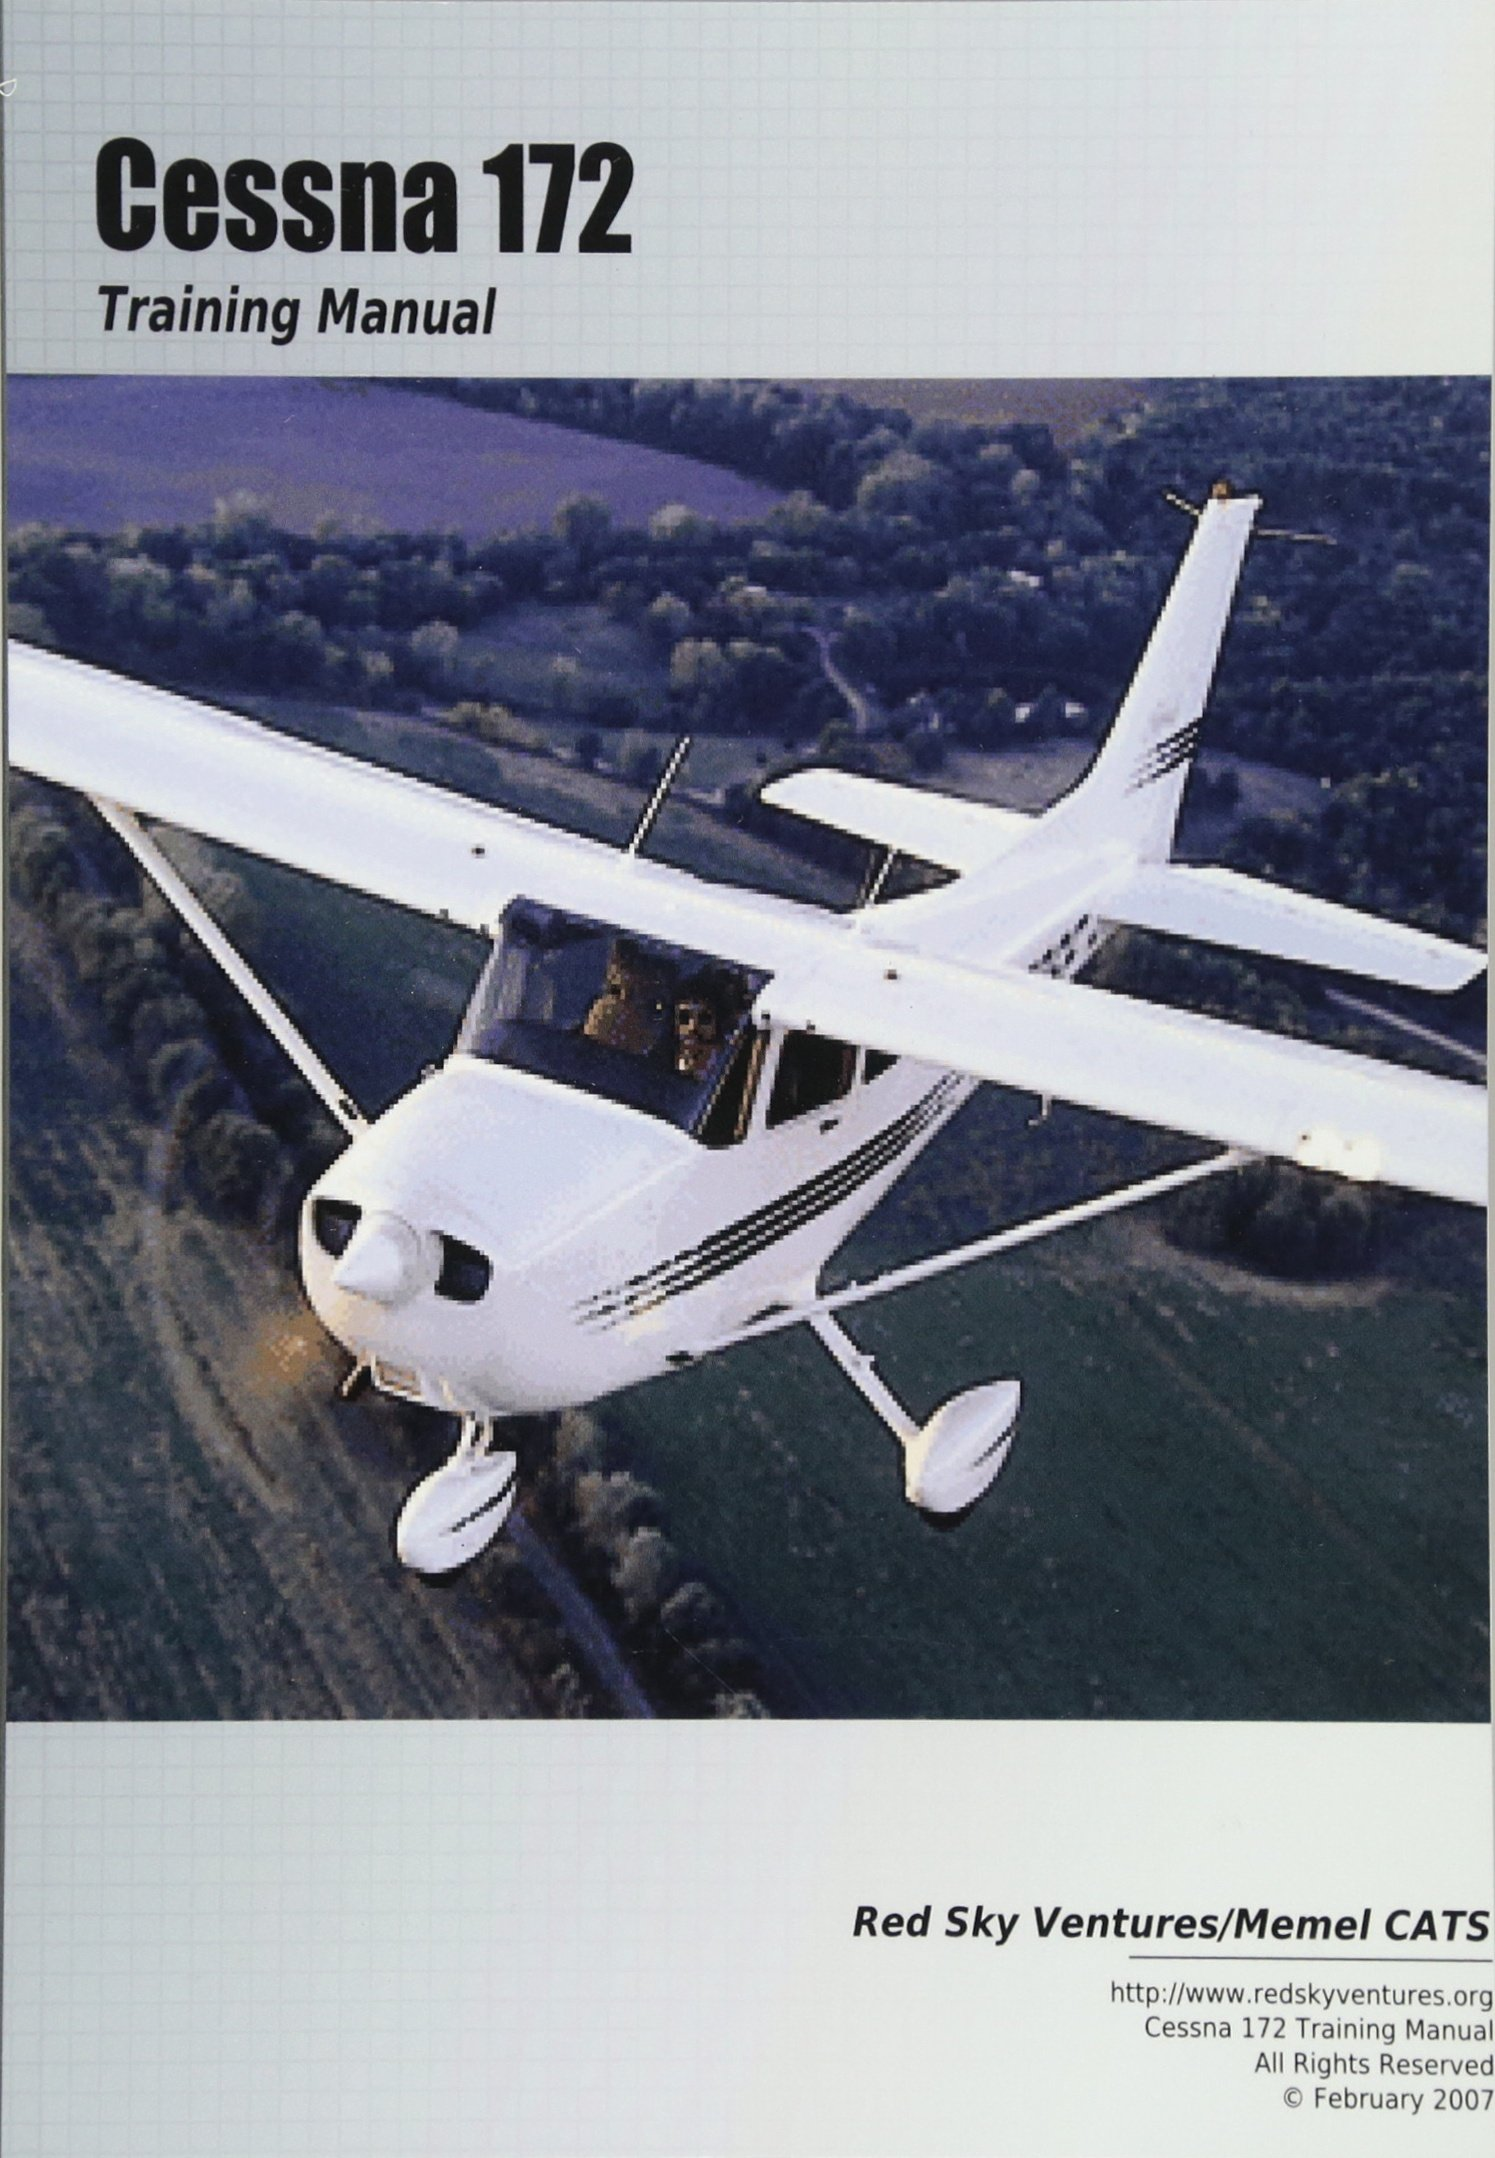 Cessna 172 Training Manual: Danielle Bruckert, Oleg Roud: 9781463675448:  Amazon.com: Books